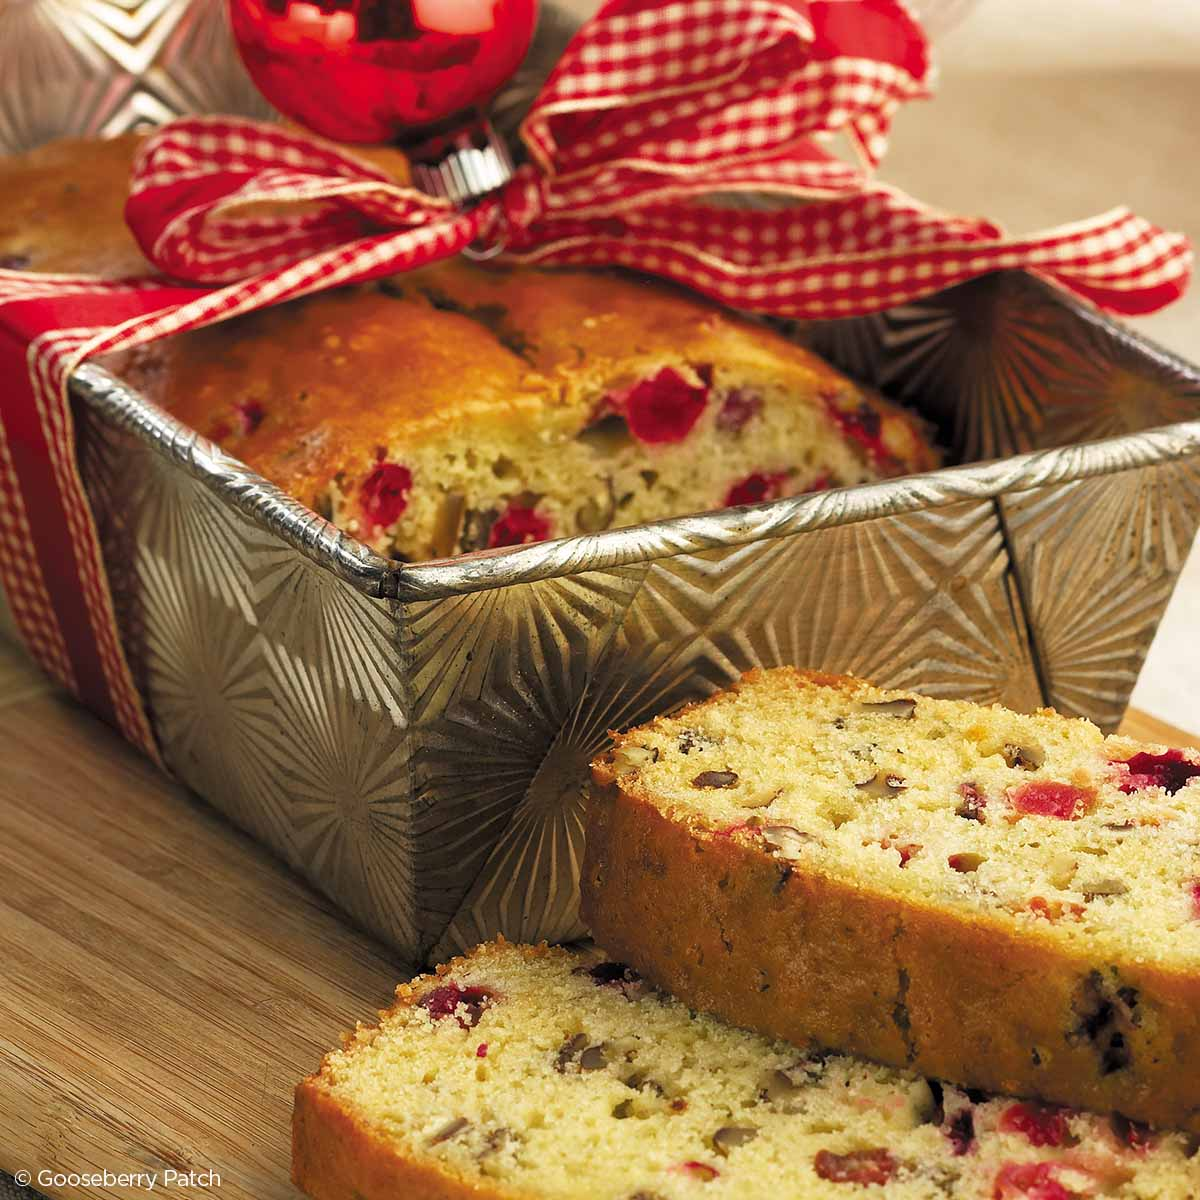 Gooseberry Patch Recipes: Mrs. Claus' Christmas Bread From